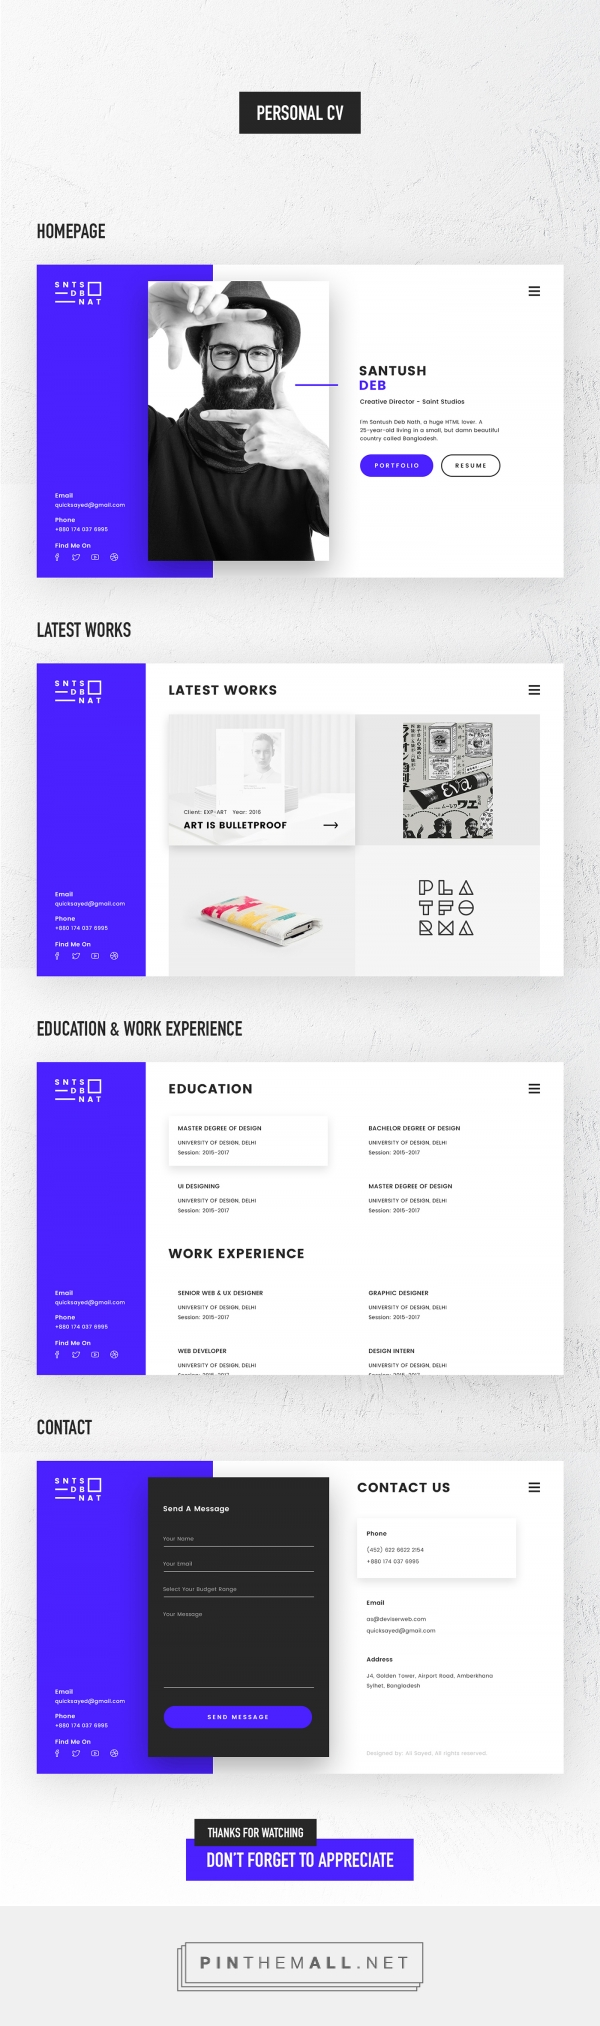 Personal CV or VCard on Behance... - a grouped images picture - Pin ...